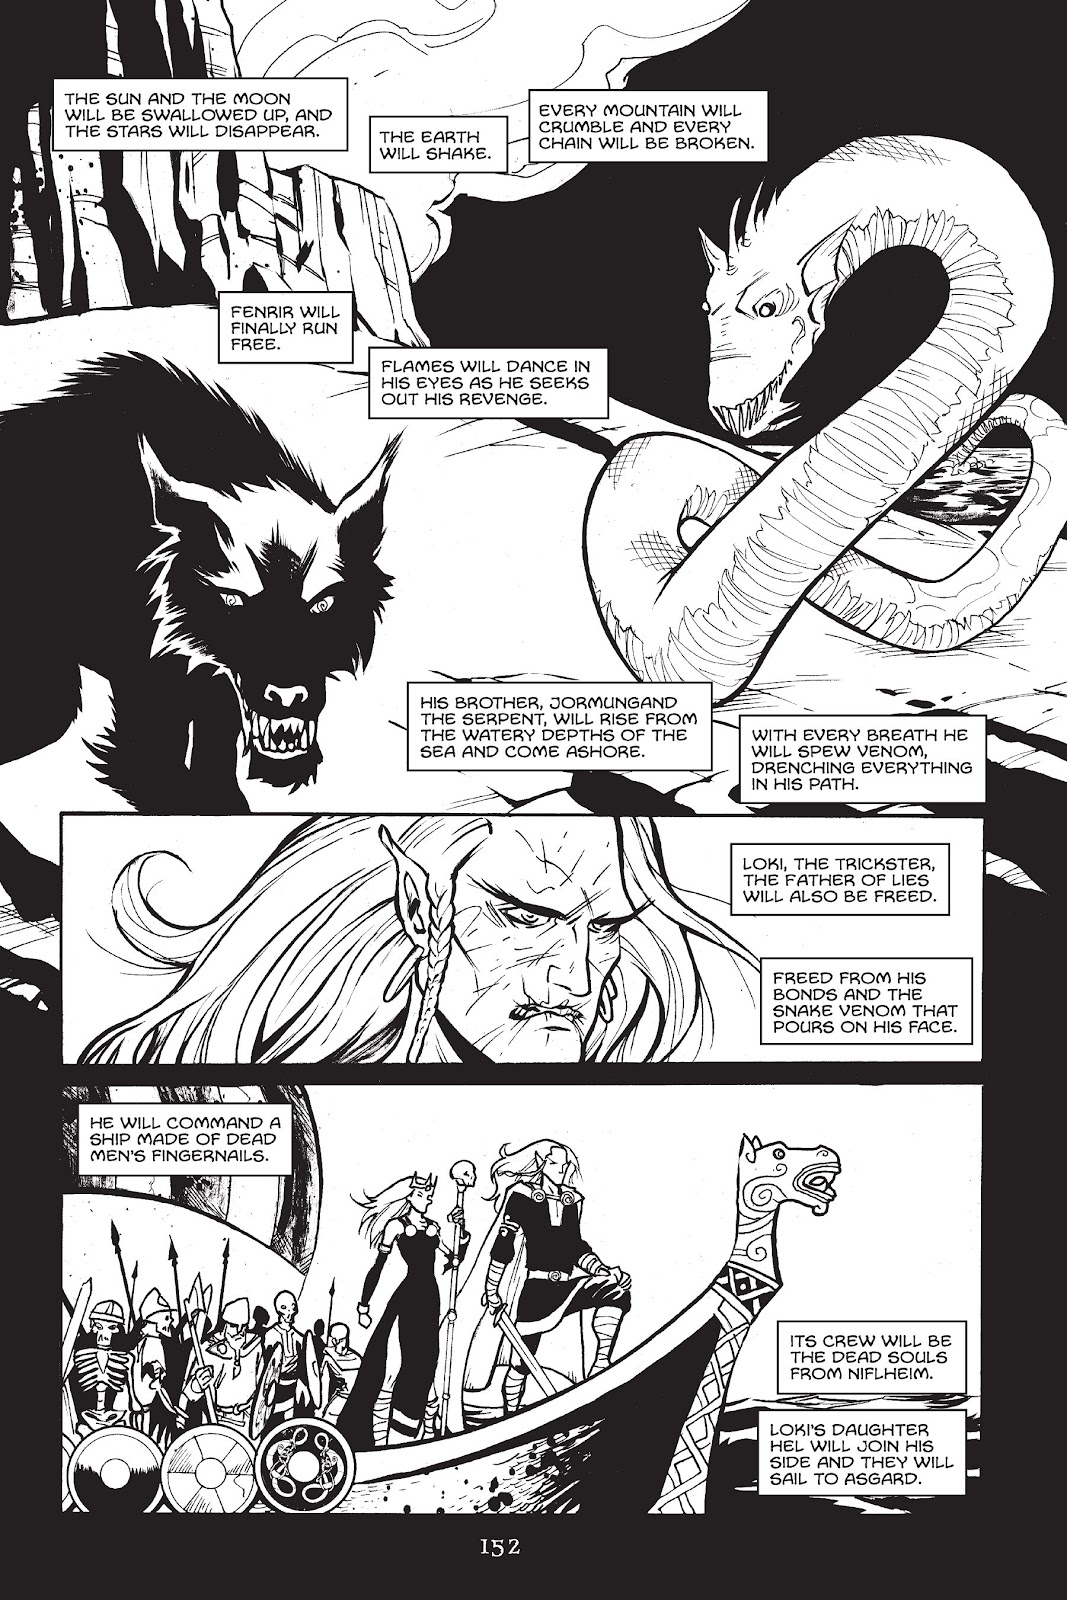 Read online Gods of Asgard comic -  Issue # TPB (Part 2) - 54